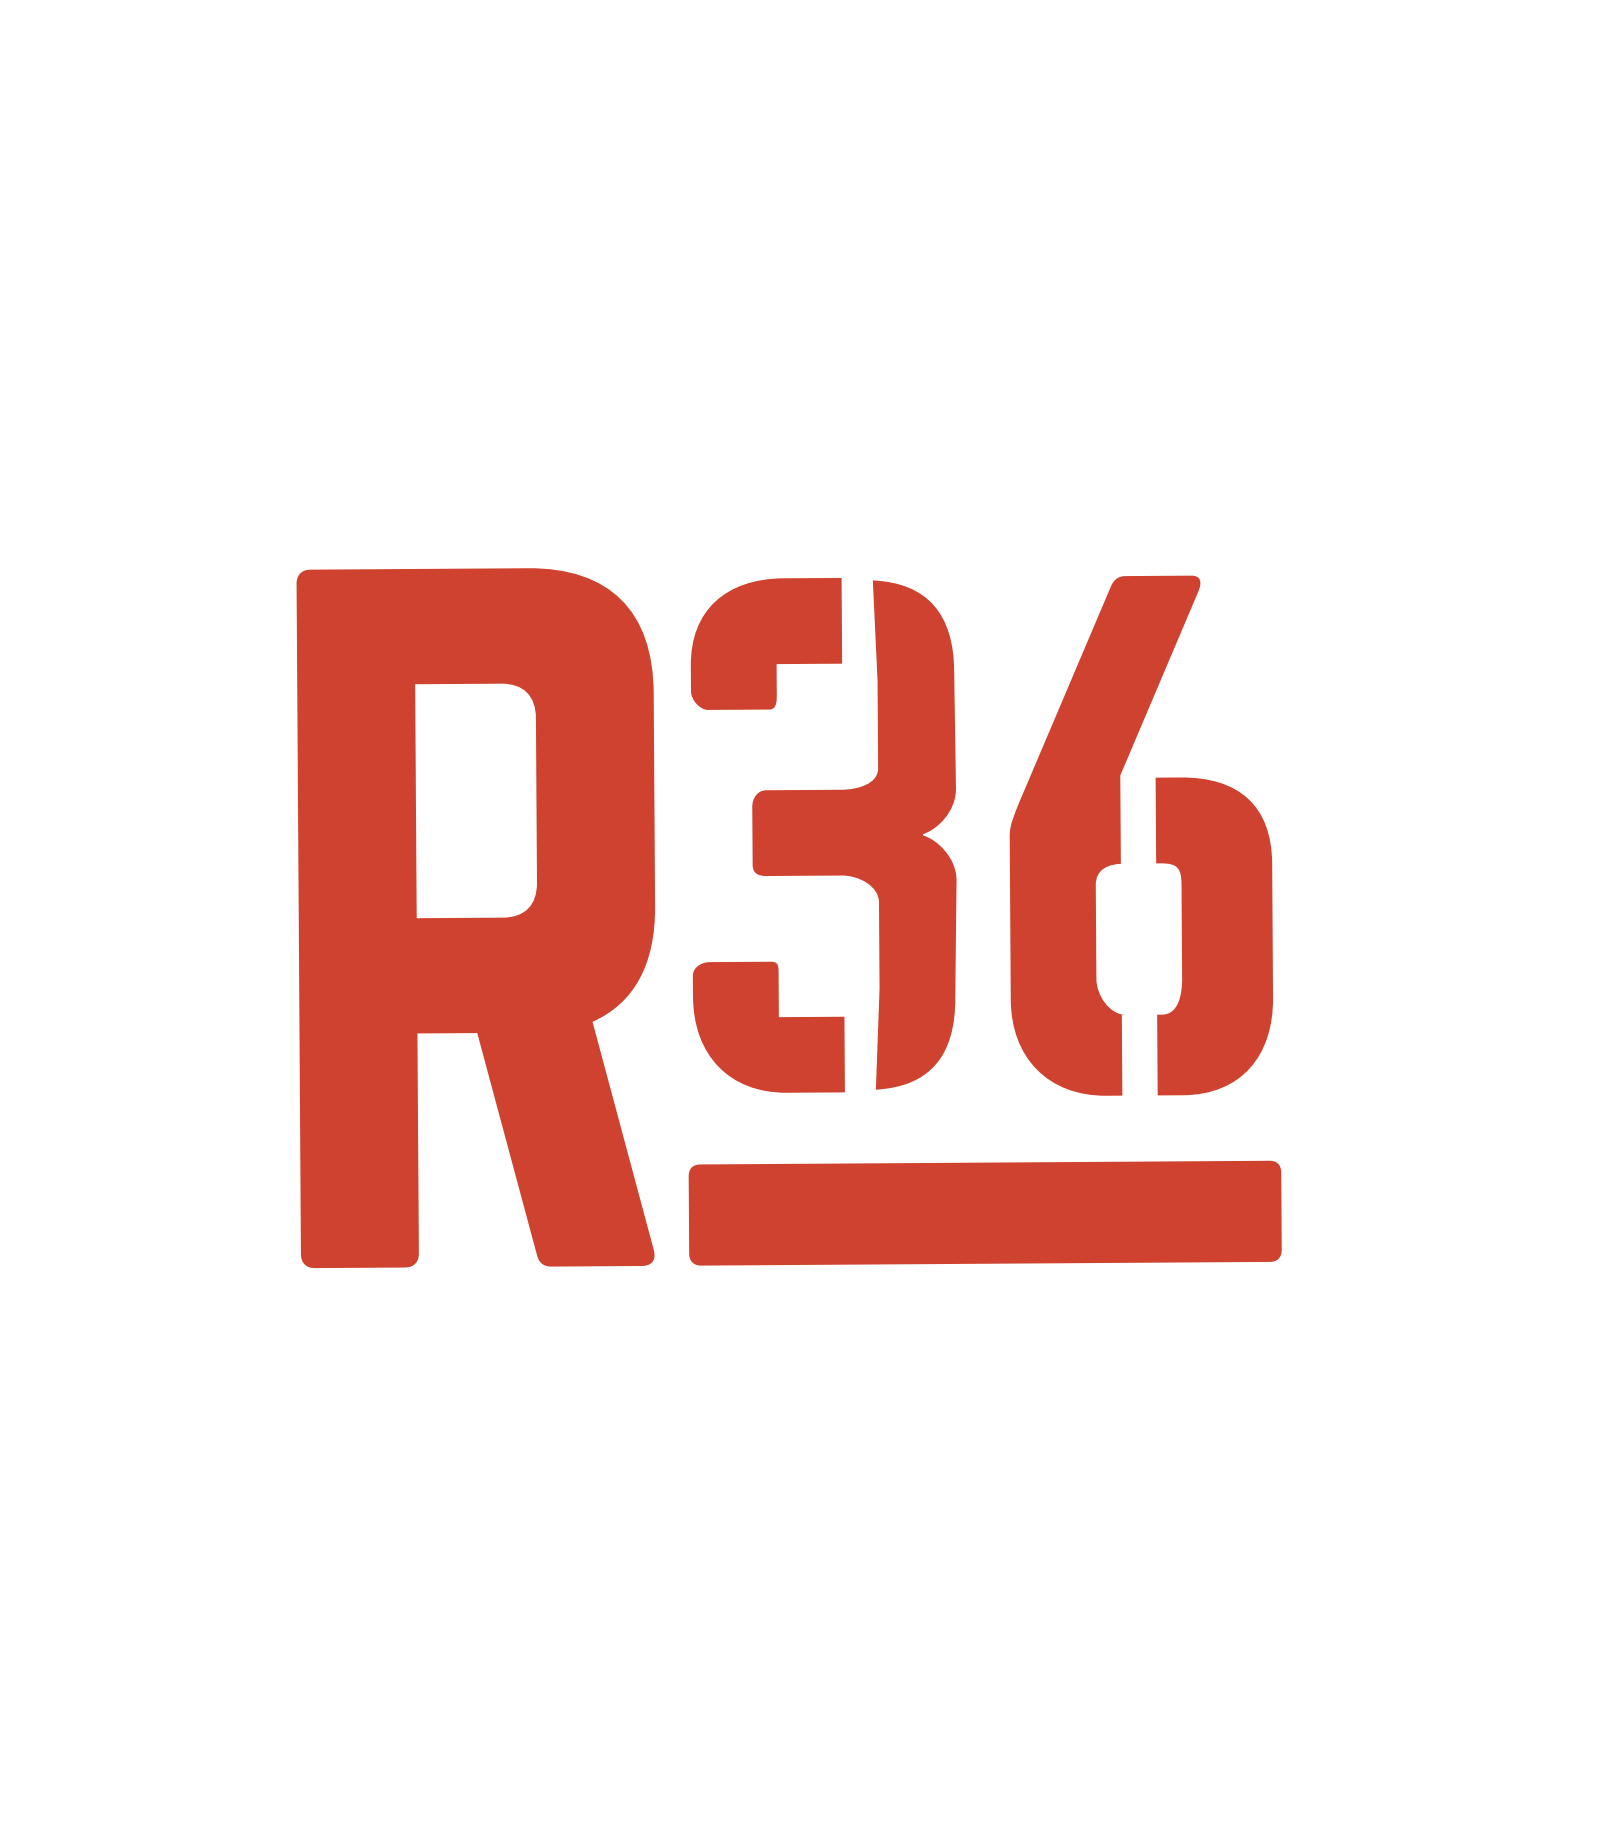 RED36 RESTAURANT - MYSTIC, CONNECTICUT   READ MORE (COMING SOON)